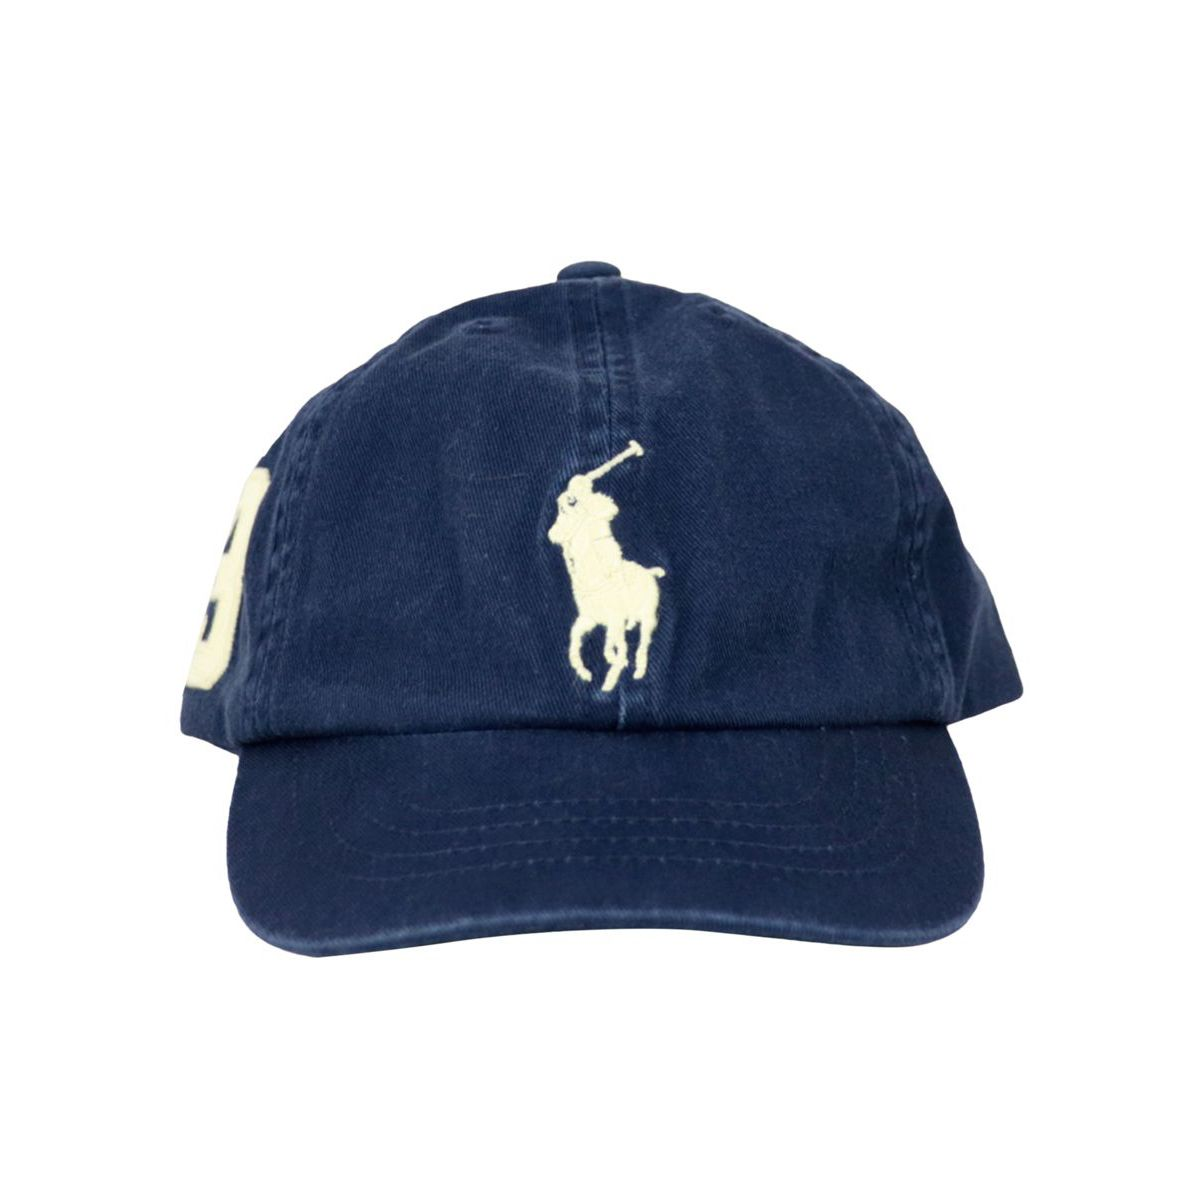 Cotton peaked hat with maxi logo embroidery Navy Polo Ralph Lauren